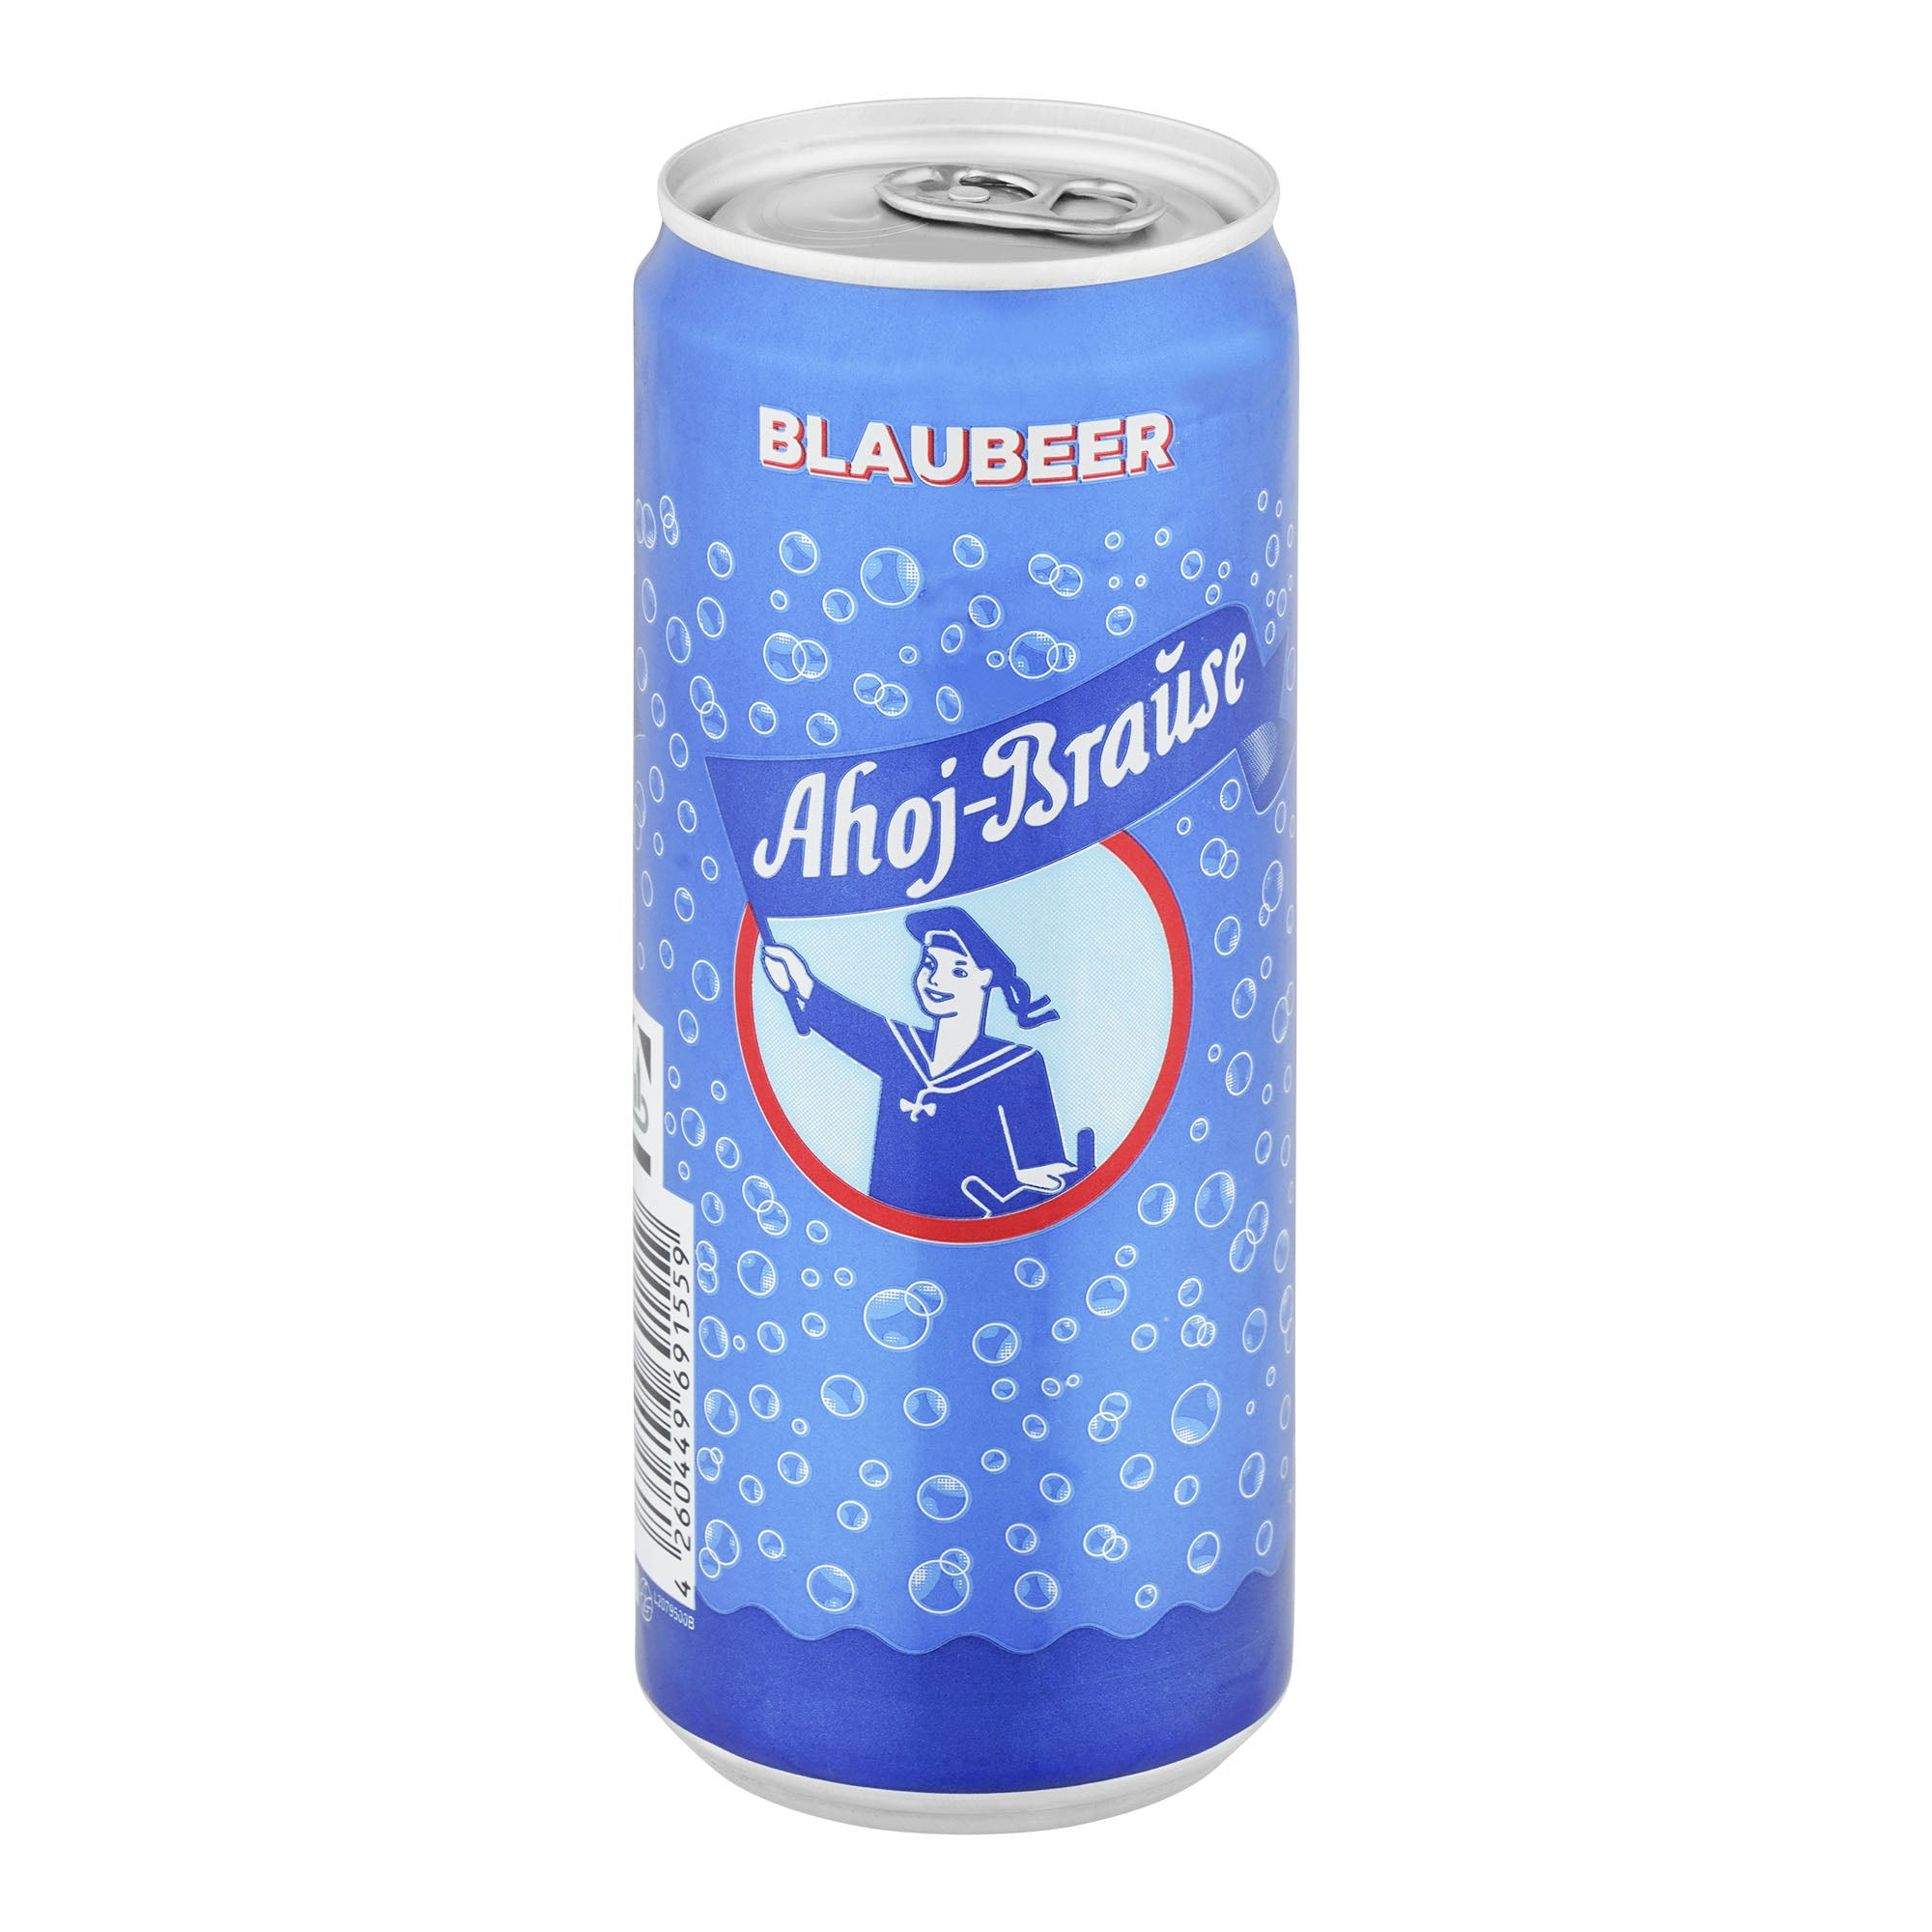 Ahoj Brause Blaubeere 12 x 330ml